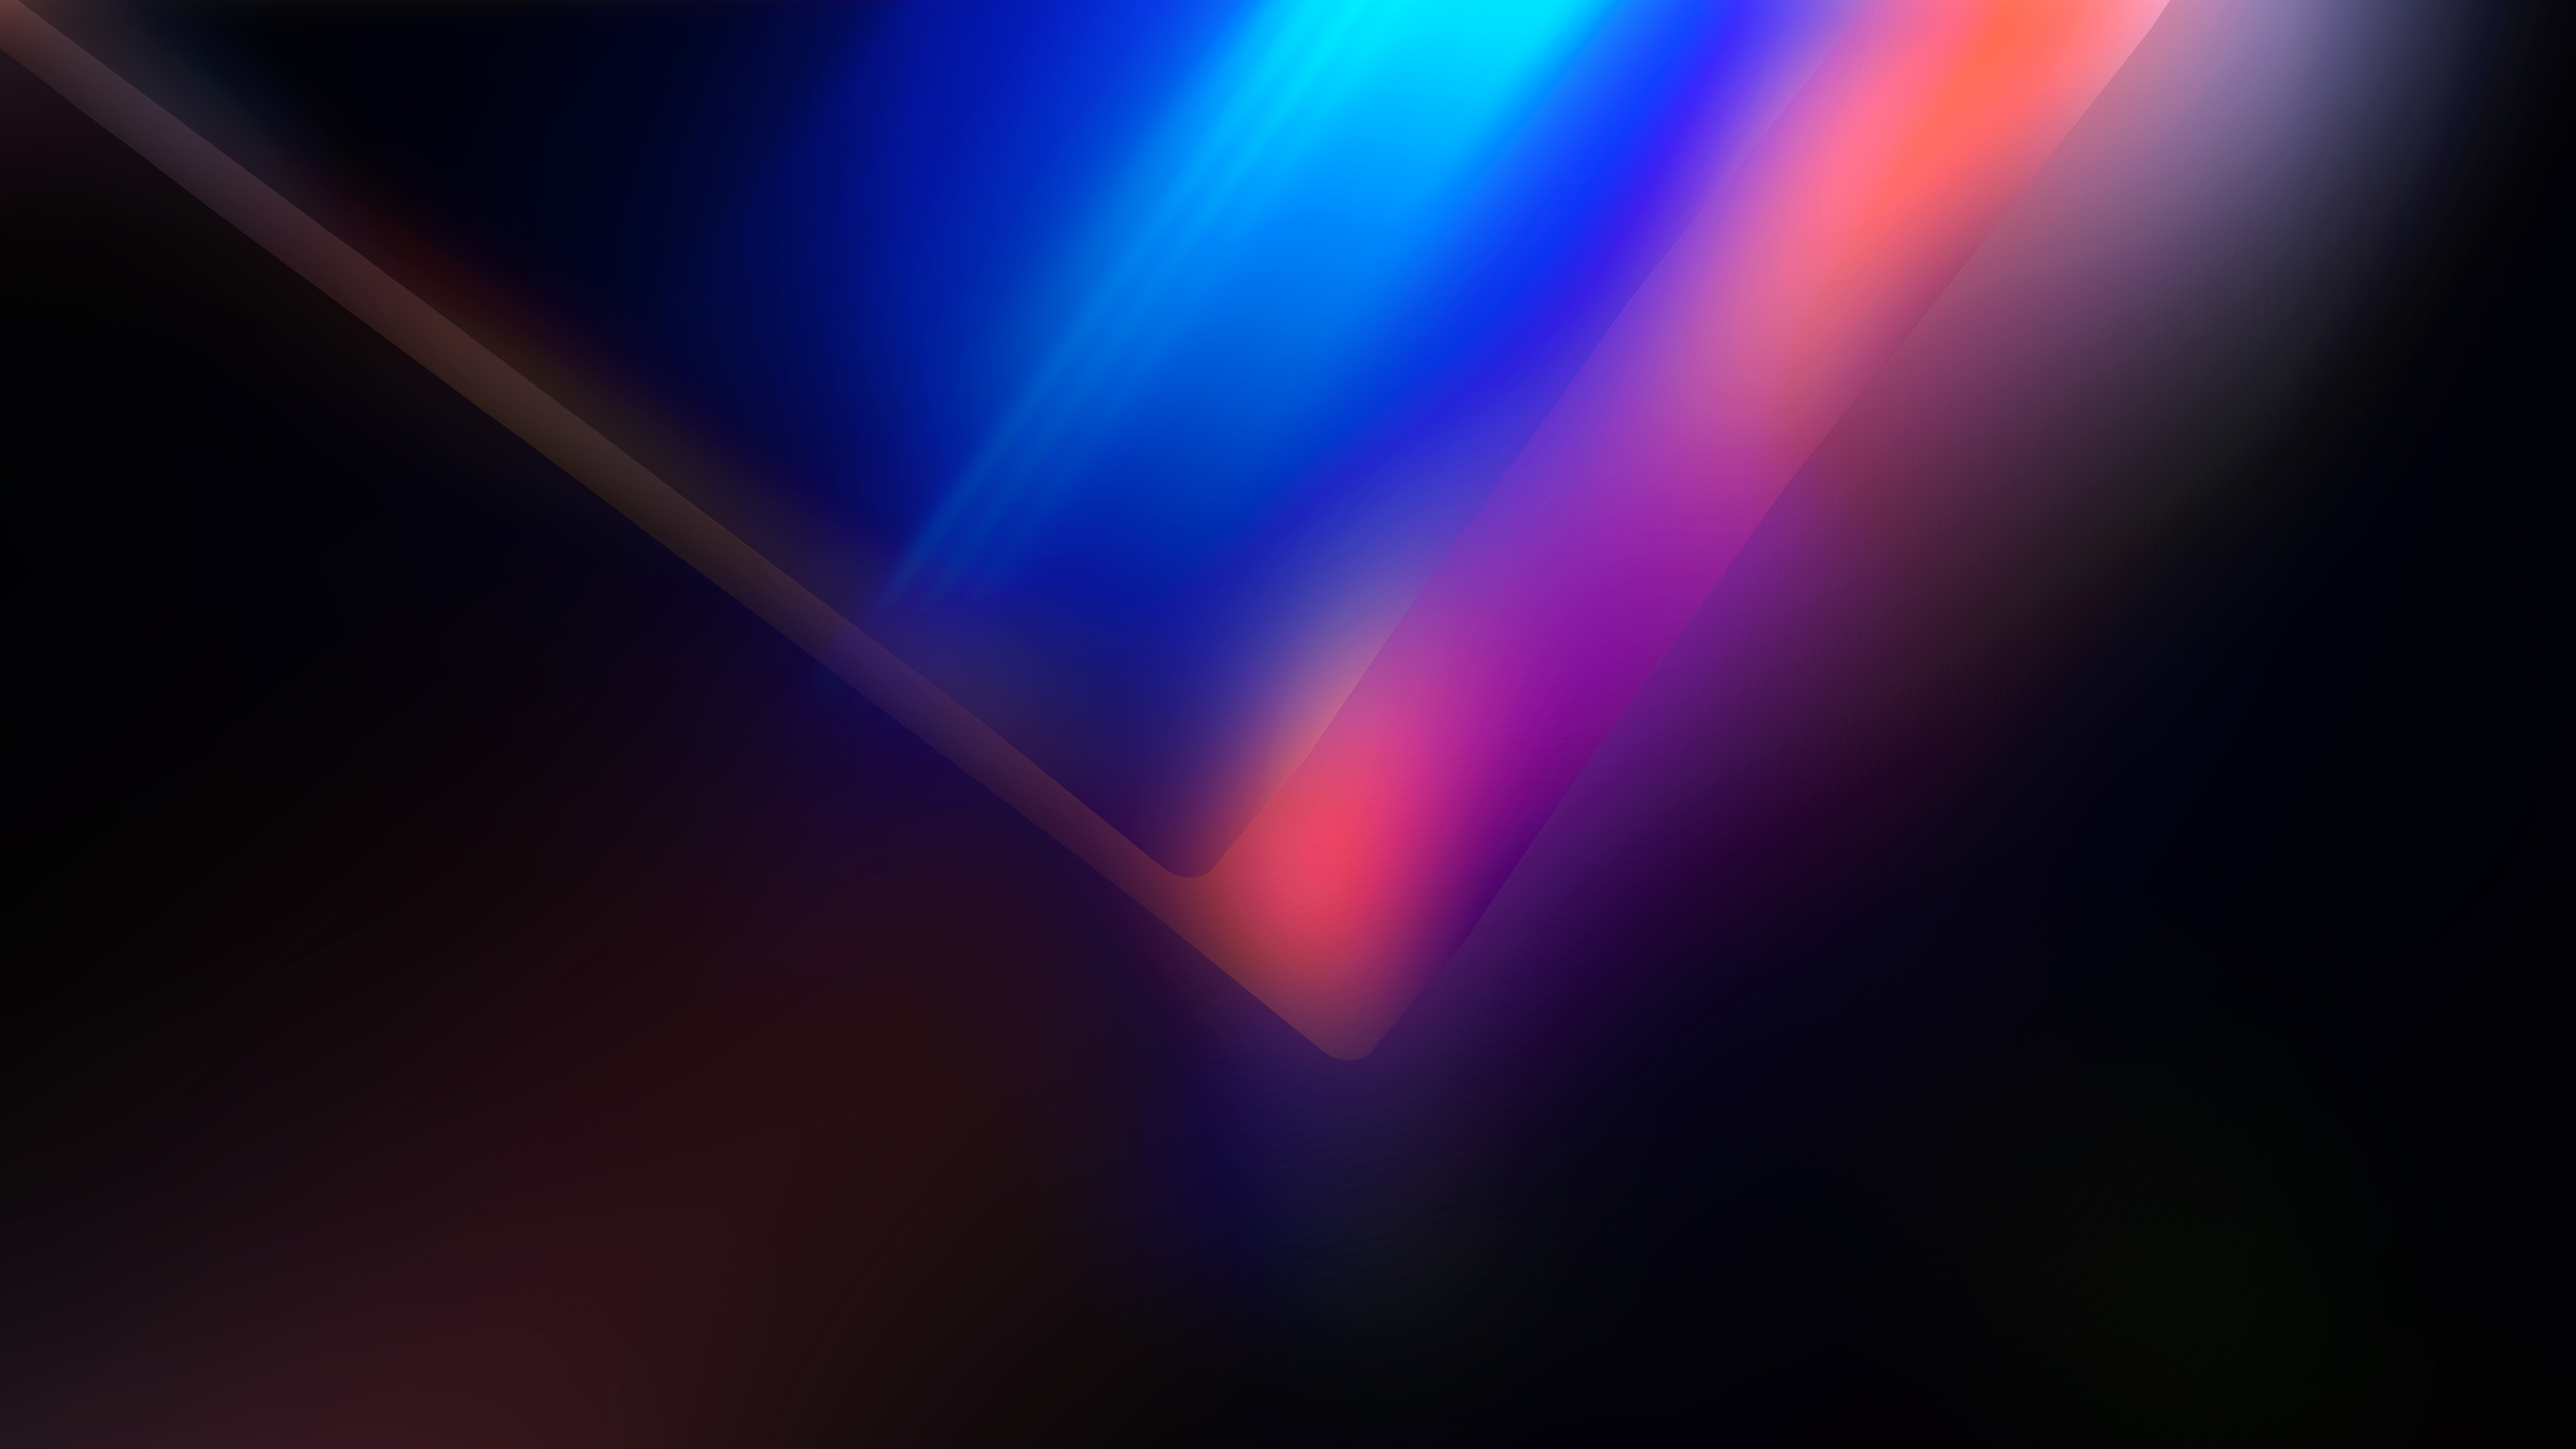 abstract spectral 5k 1539371351 - Abstract Spectral 5k - hd-wallpapers, deviantart wallpapers, dark wallpapers, abstract wallpapers, 5k wallpapers, 4k-wallpapers